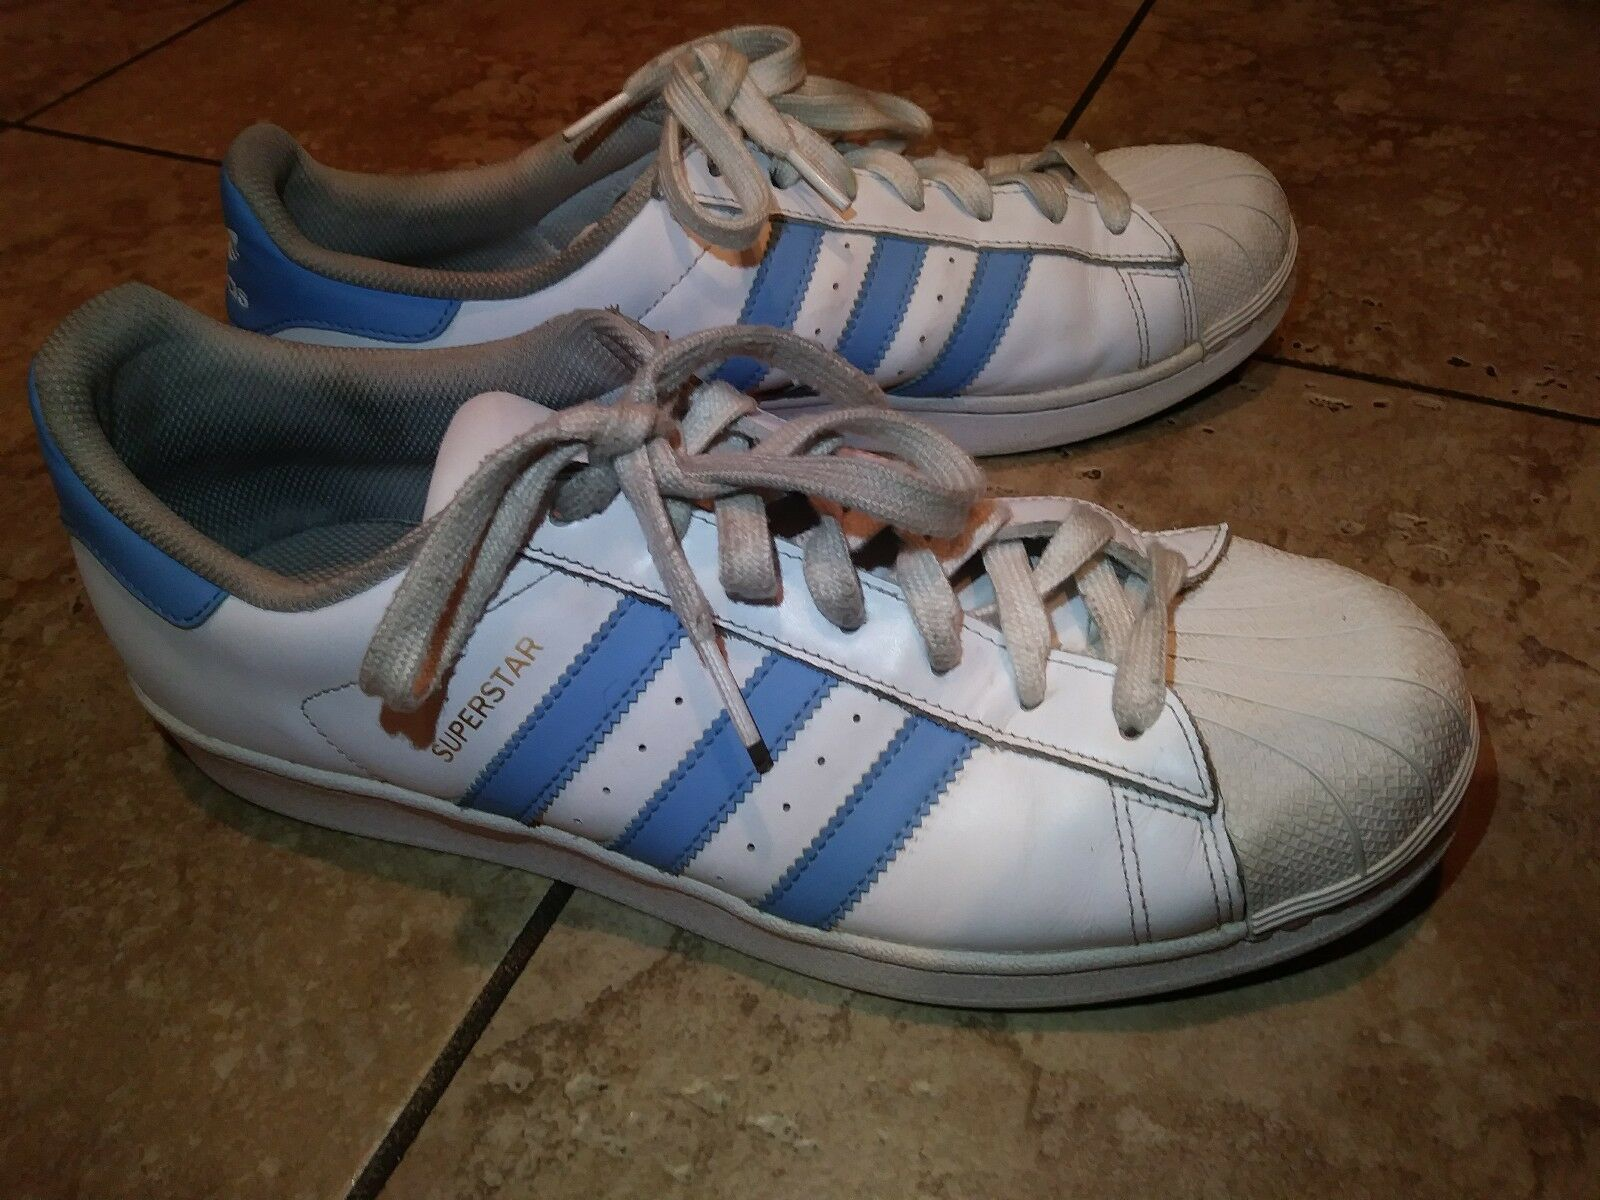 Mens White Light bluee  gold Adidas Trainers Trainers Trainers shoes Size 11 BY3723 413d03